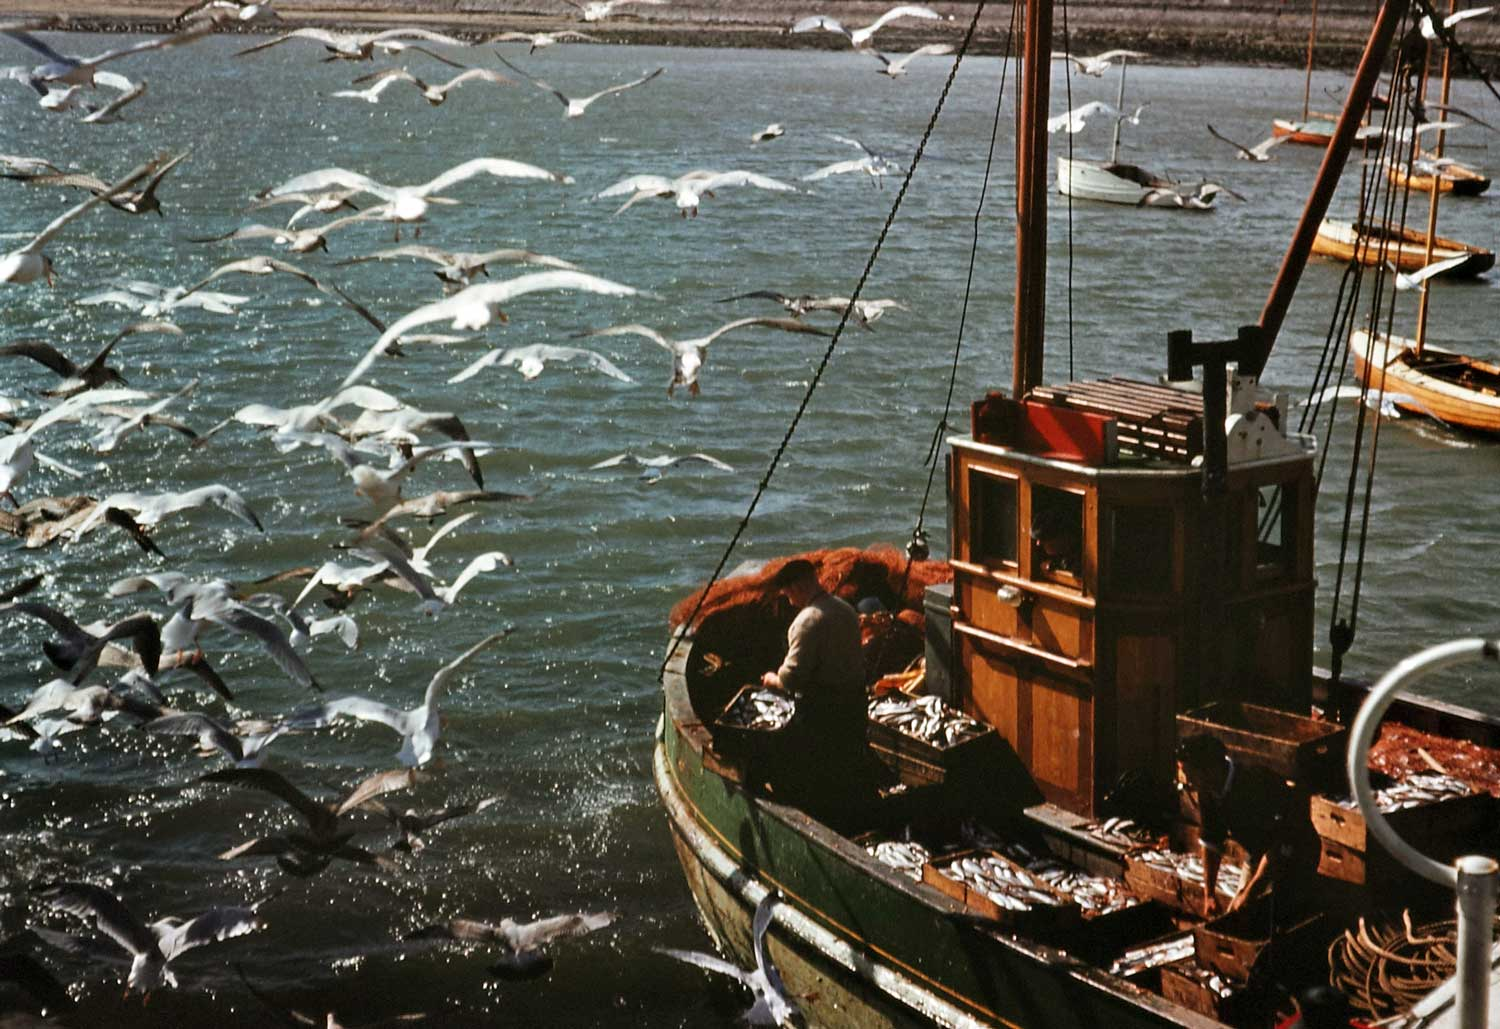 1960: A fishing trawler returning to Skerries, Co. Dublin